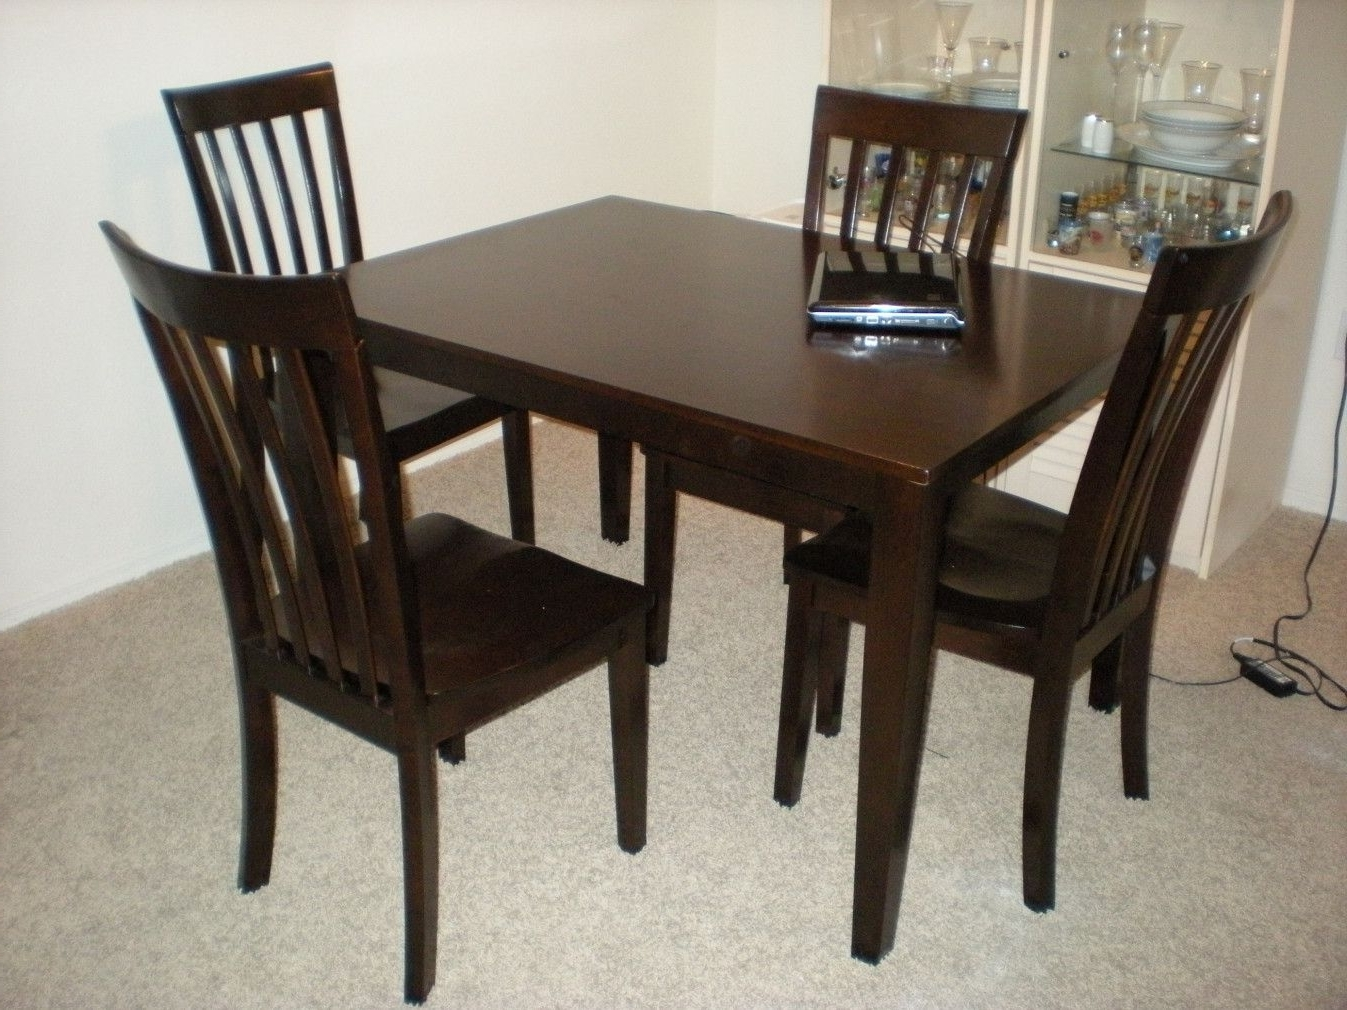 Dark Wooden Dining Tables Within 2017 2018 Black Wooden Dining Table And Chairs – Diy Modern Furniture (View 12 of 25)